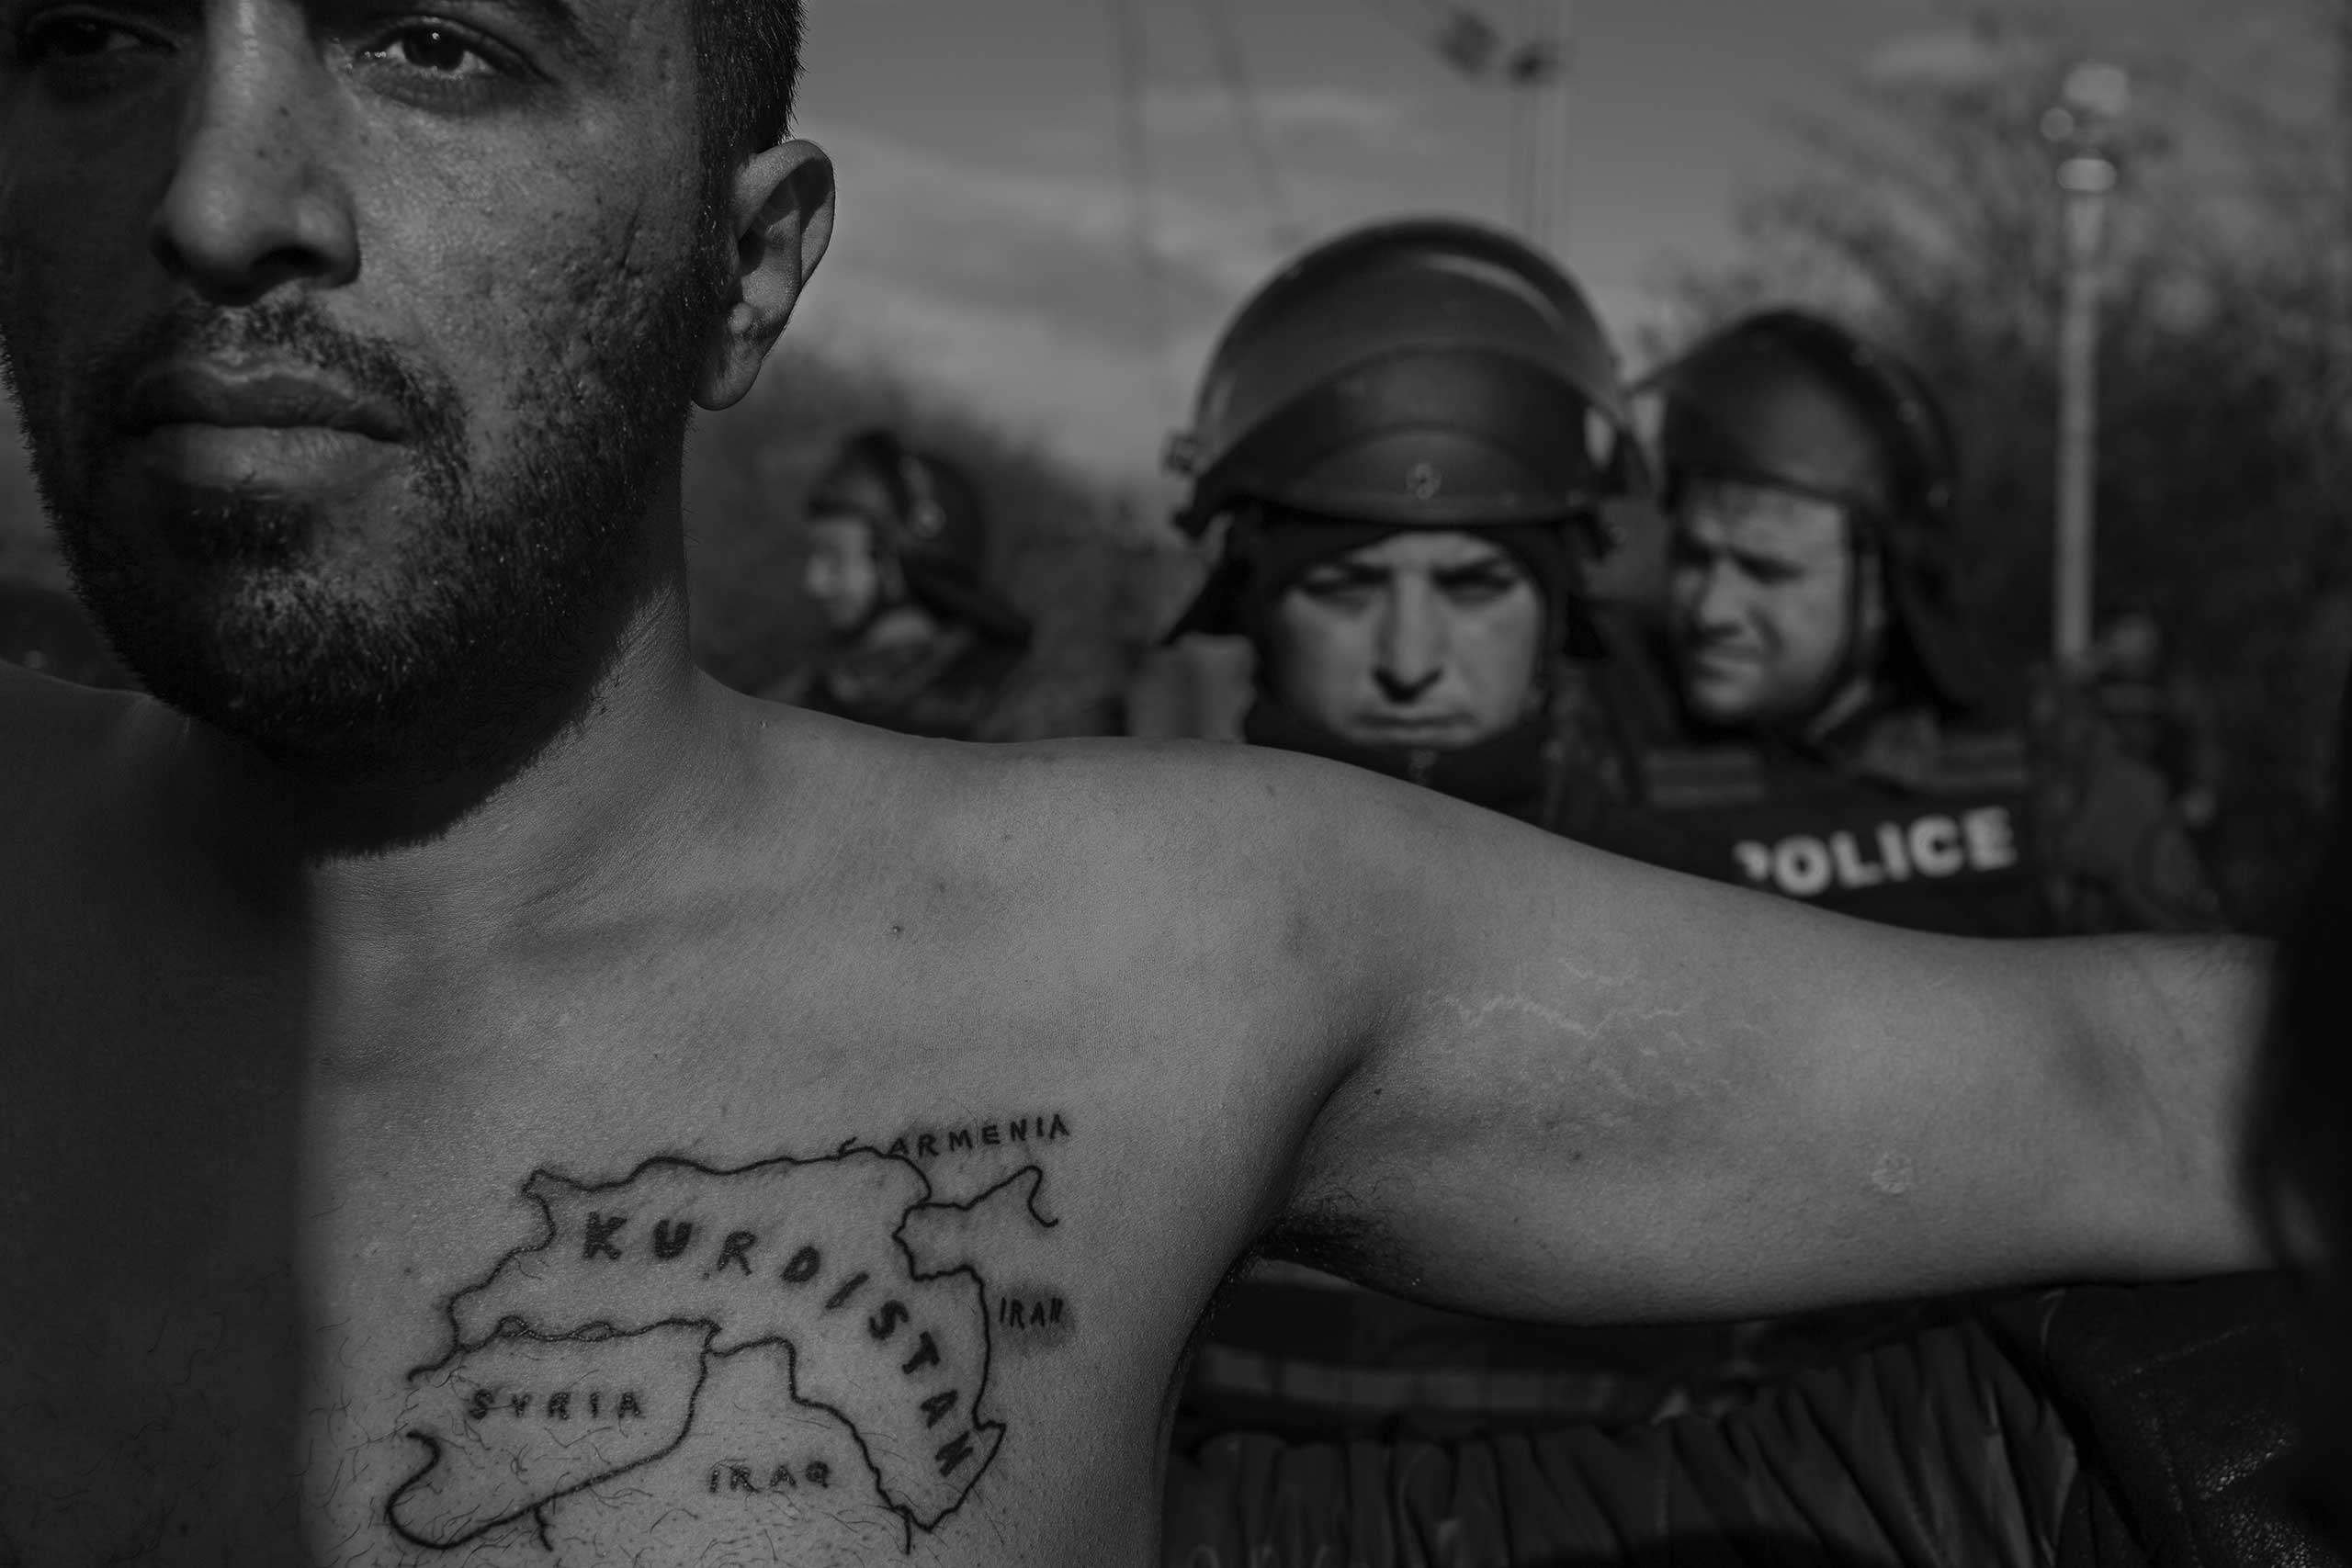 A man spreads his arms in a bid to defuse tensions between asylum seekers and police at a demonstration at the Macedonian border.